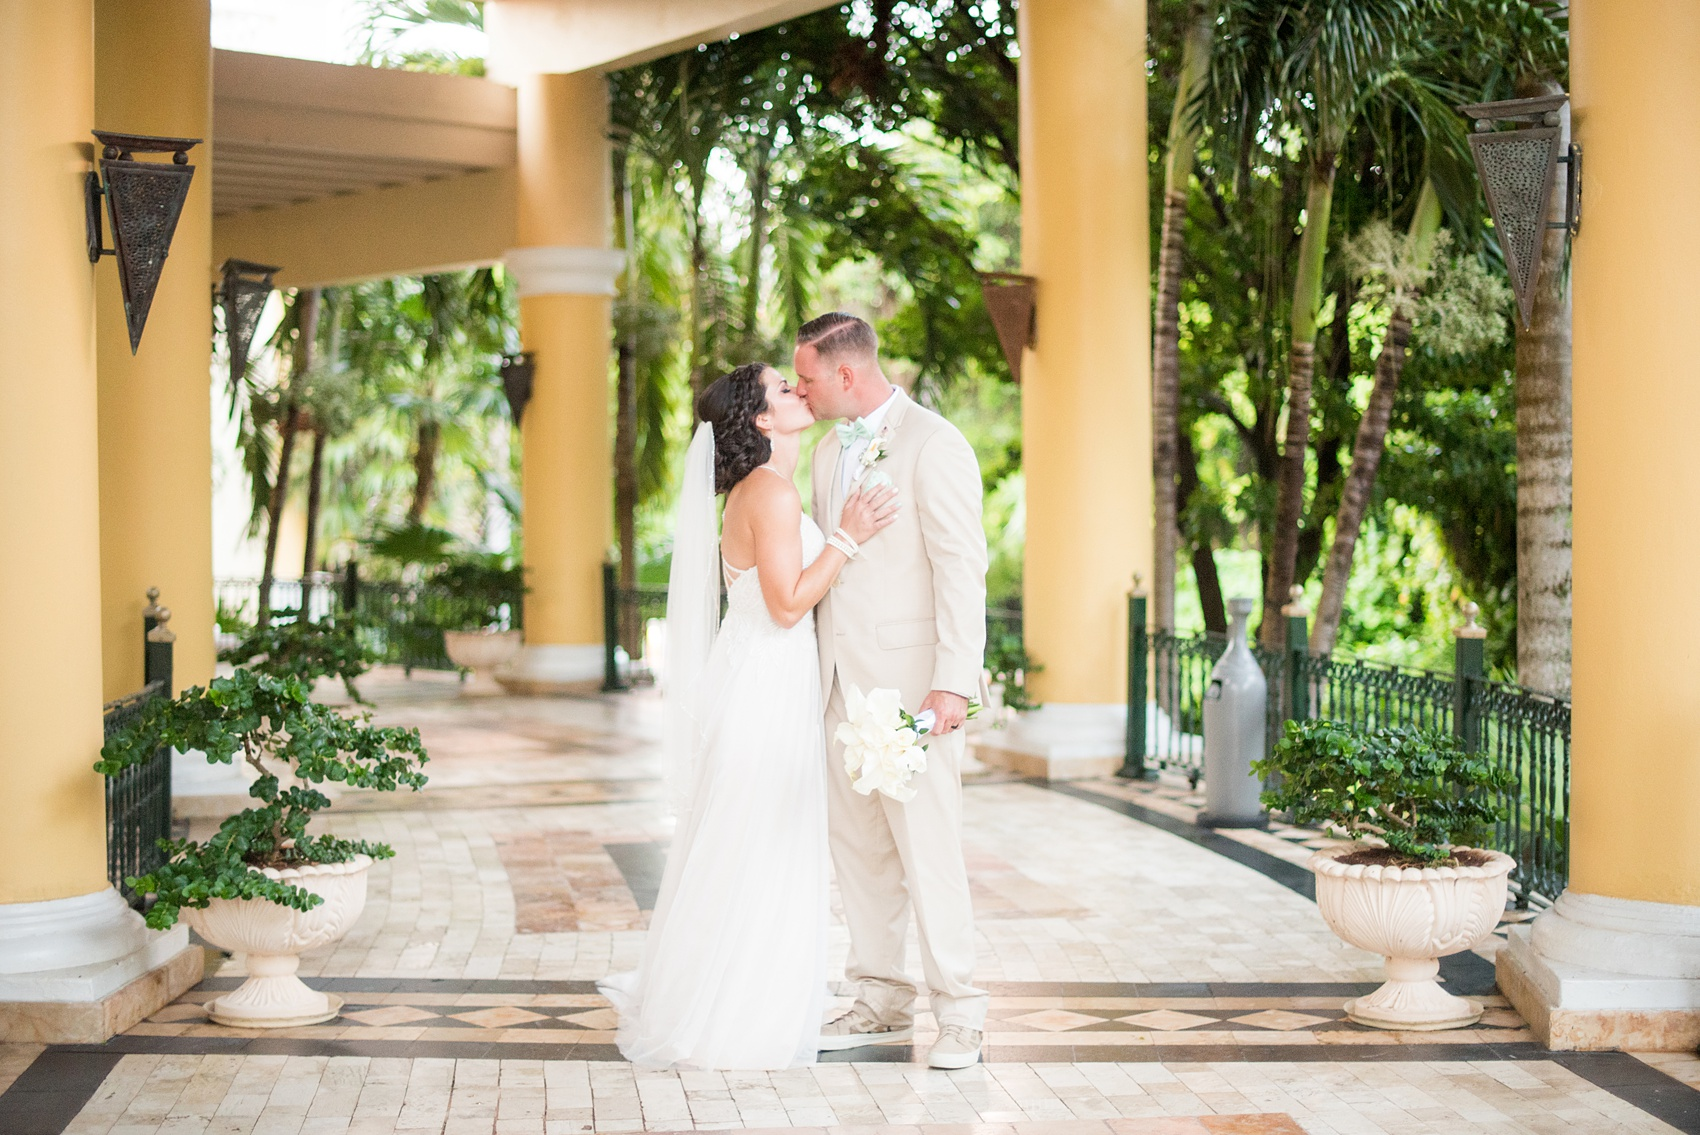 Mikkel Paige Photography photos from a wedding at Grand Paraiso, Mexico, Playa del Carmen Iberostar resort. Picture of the bride and groom kissing in the tropical foliage at the resort.